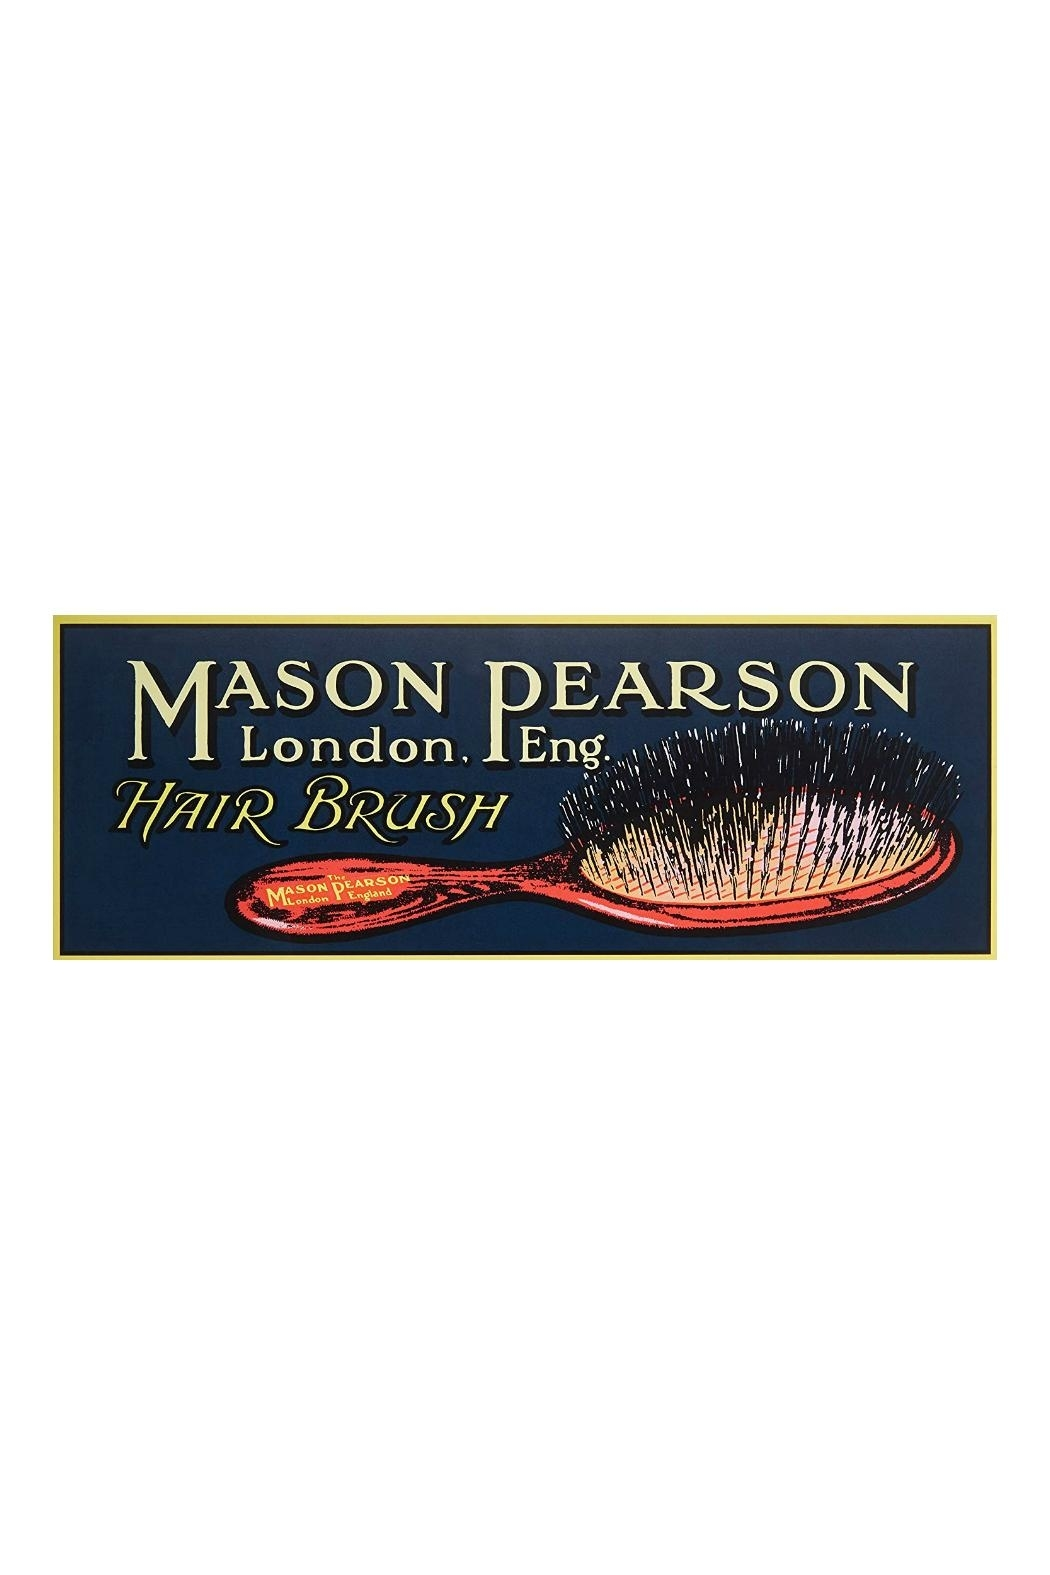 Mason Pearson Masonpearson Pocket Mixture - Main Image